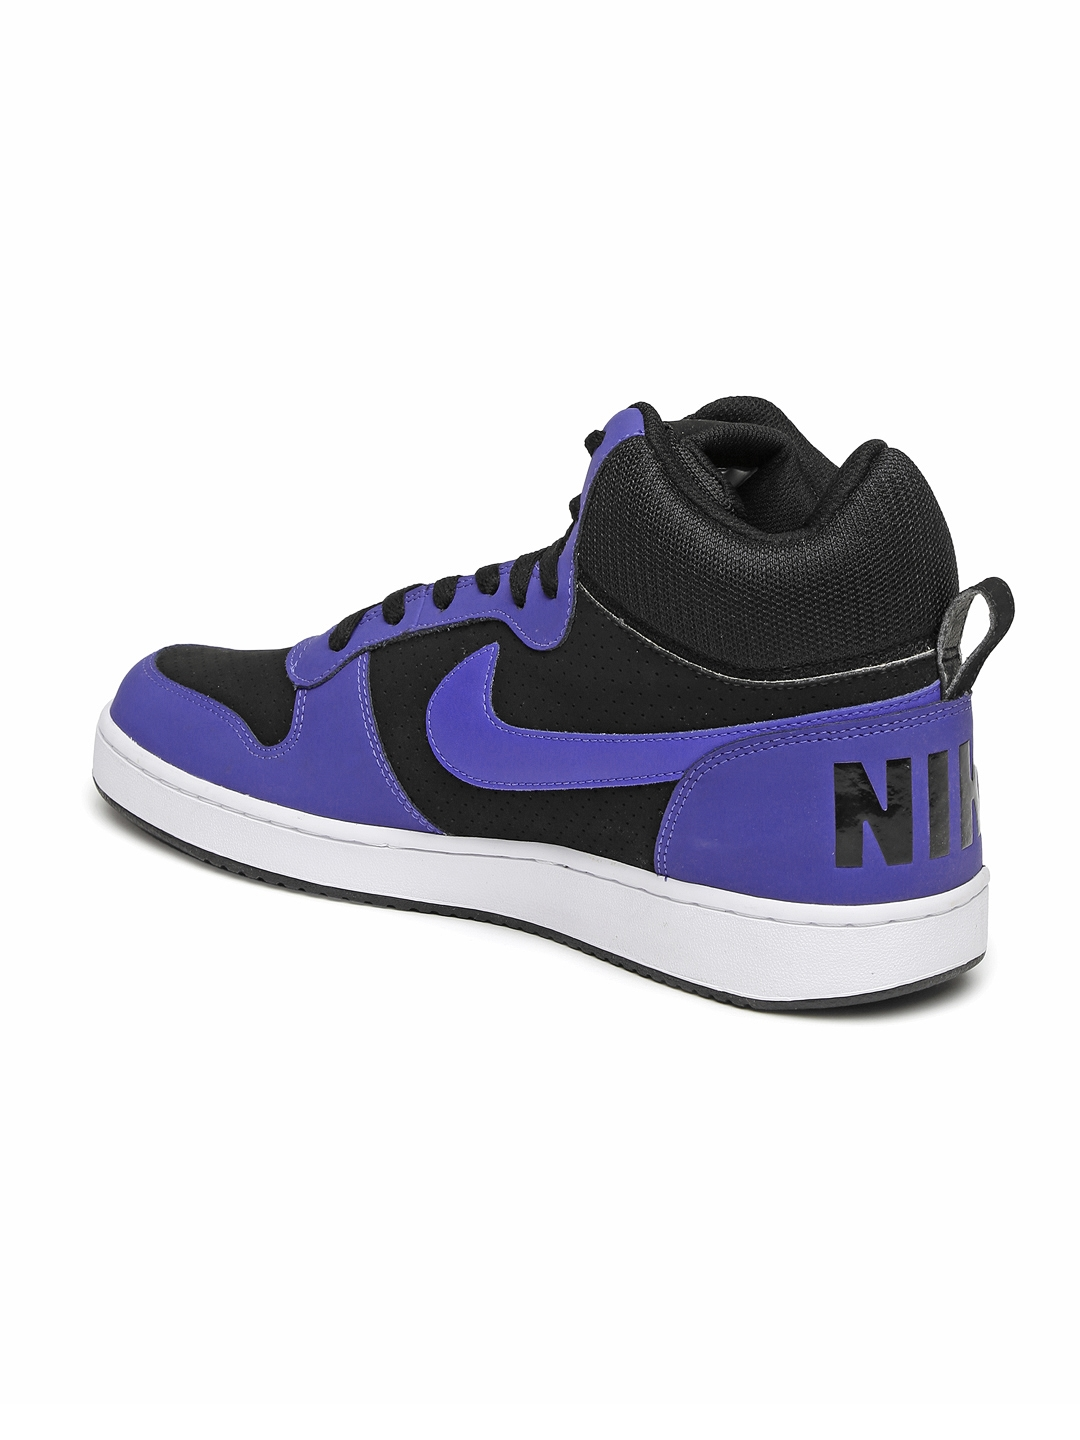 441bcd716e7c Buy Nike Men Black   Blue Perforated Mid Top Court Borough Trainers ...